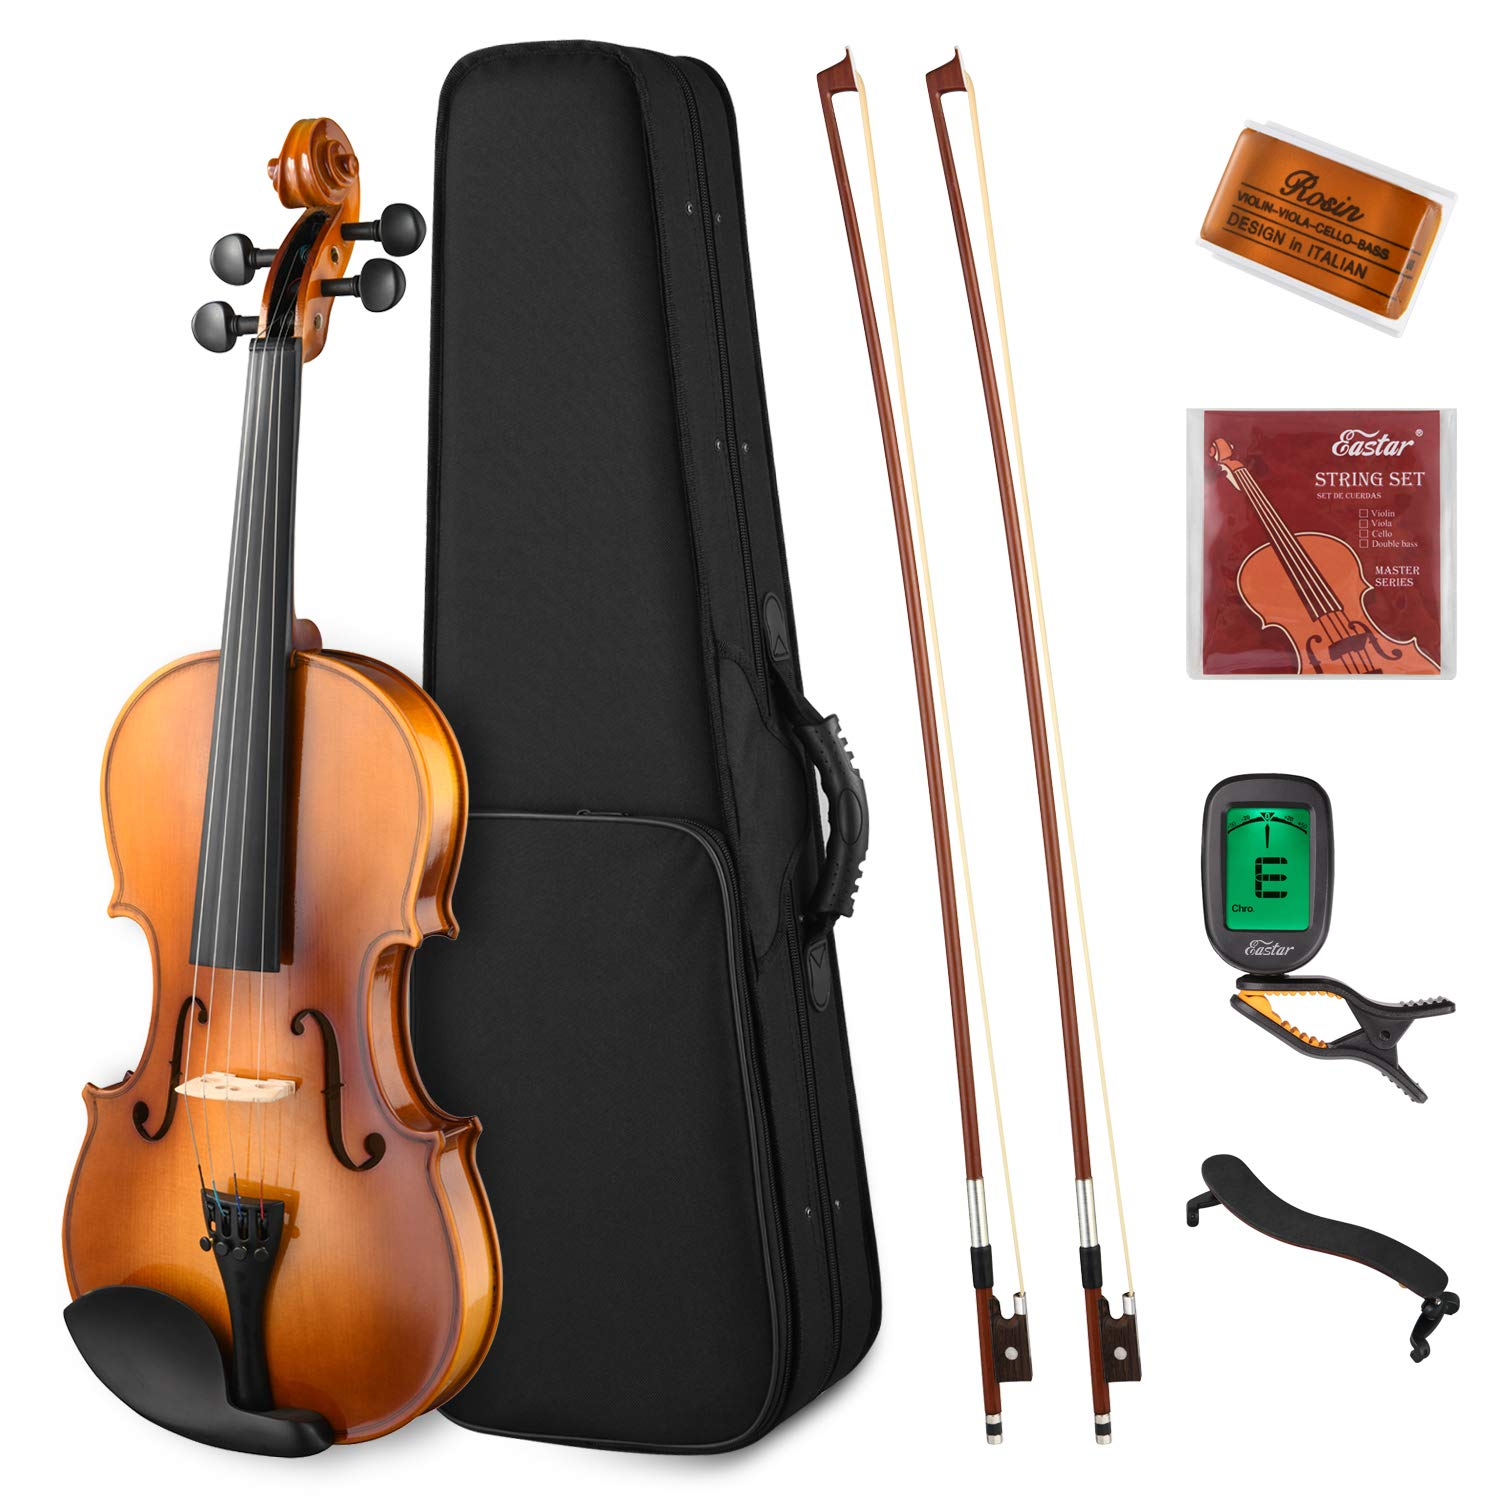 Eastar EVA-330 4/4 Solid Wood Violin Set Full Size with Hard Case, Shoulder Rest, Rosin, Two Bow, Clip-on Tuner and Extra Strings for Students Kids Adults by Eastar